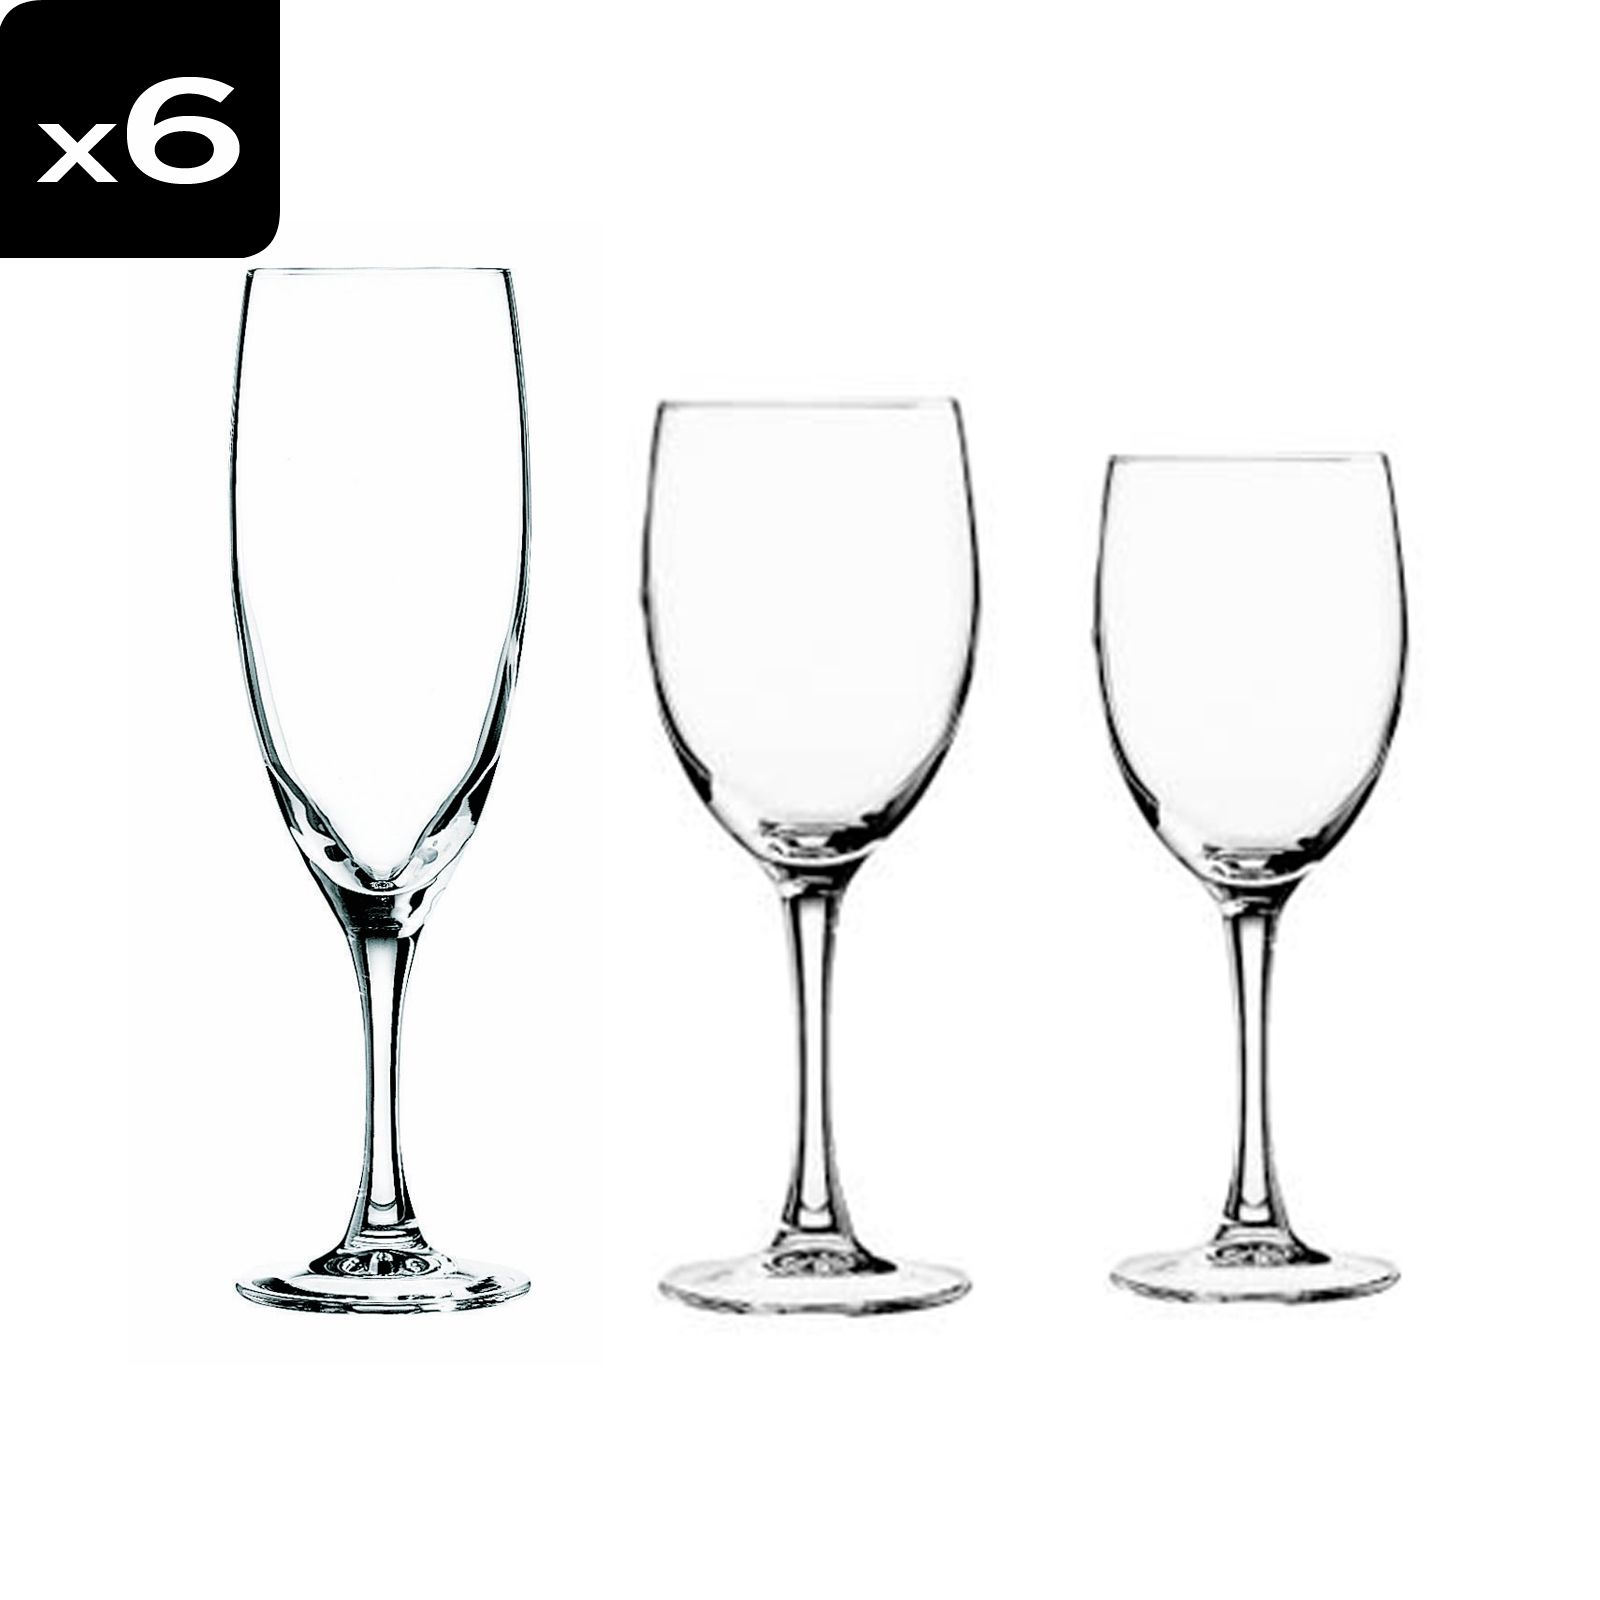 cristal d 39 arques vicomte service de 18 verres pied. Black Bedroom Furniture Sets. Home Design Ideas